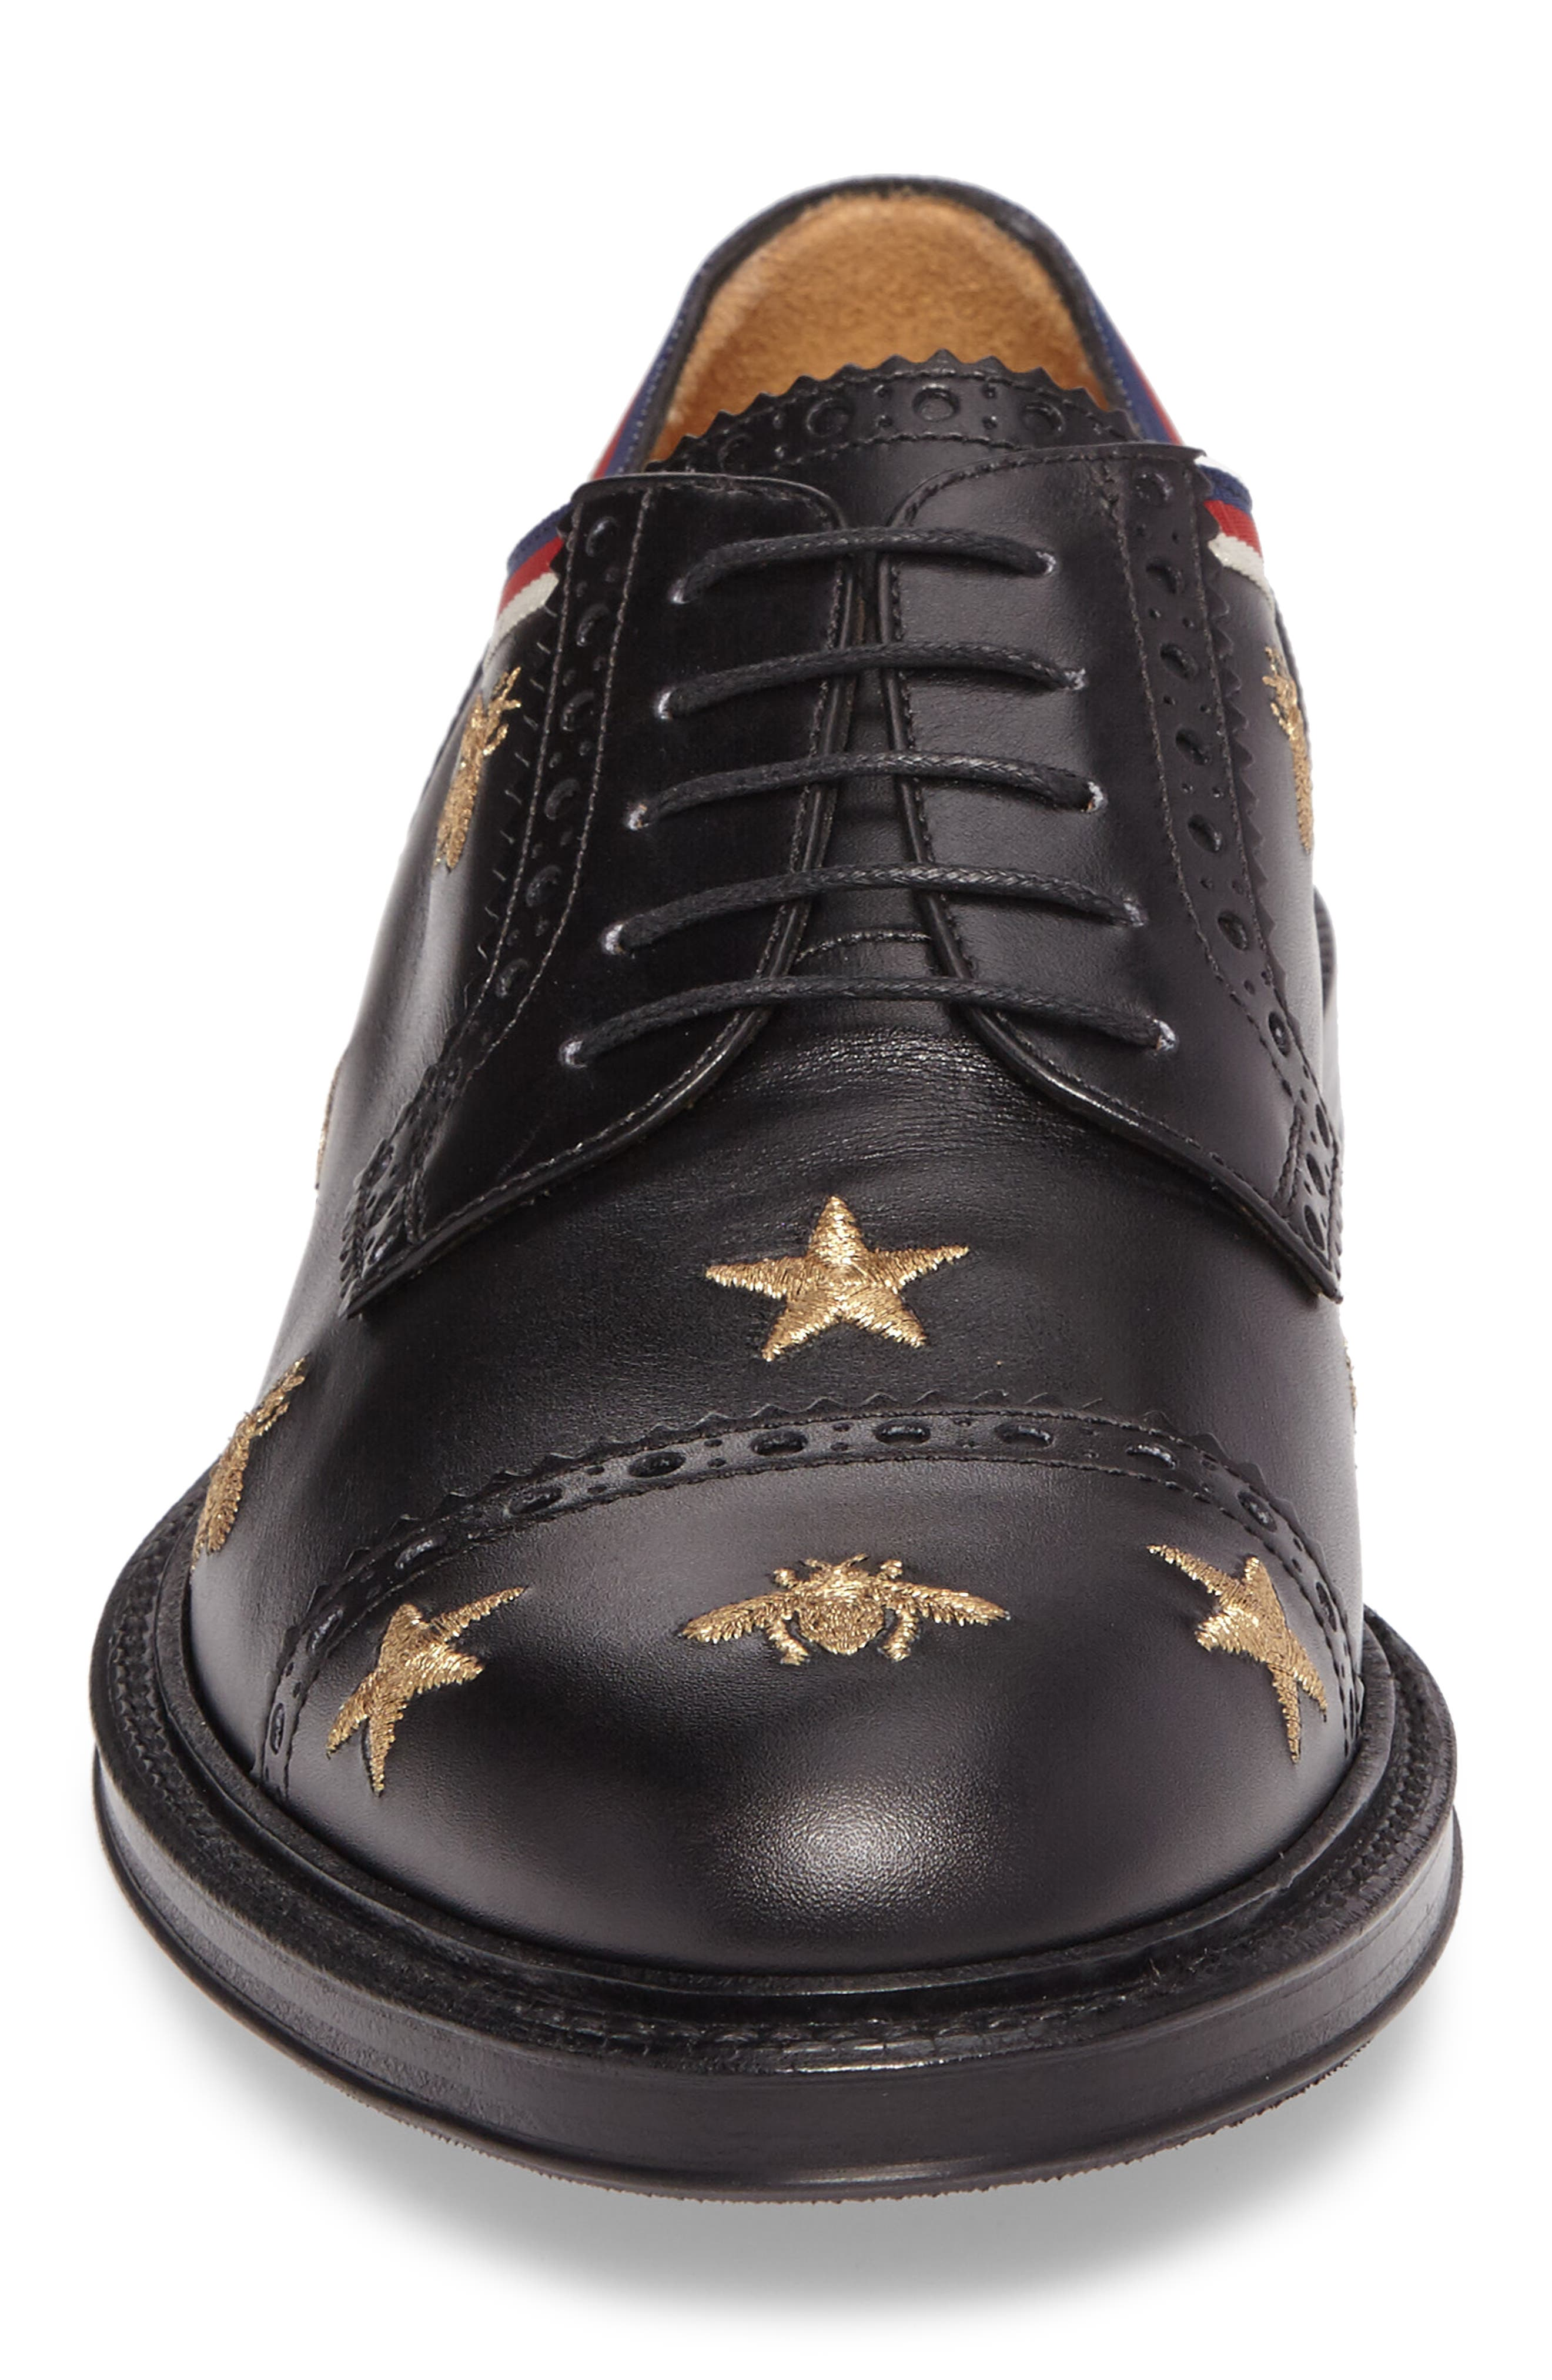 Embroidered Leather Brogue Shoe,                             Alternate thumbnail 4, color,                             Black